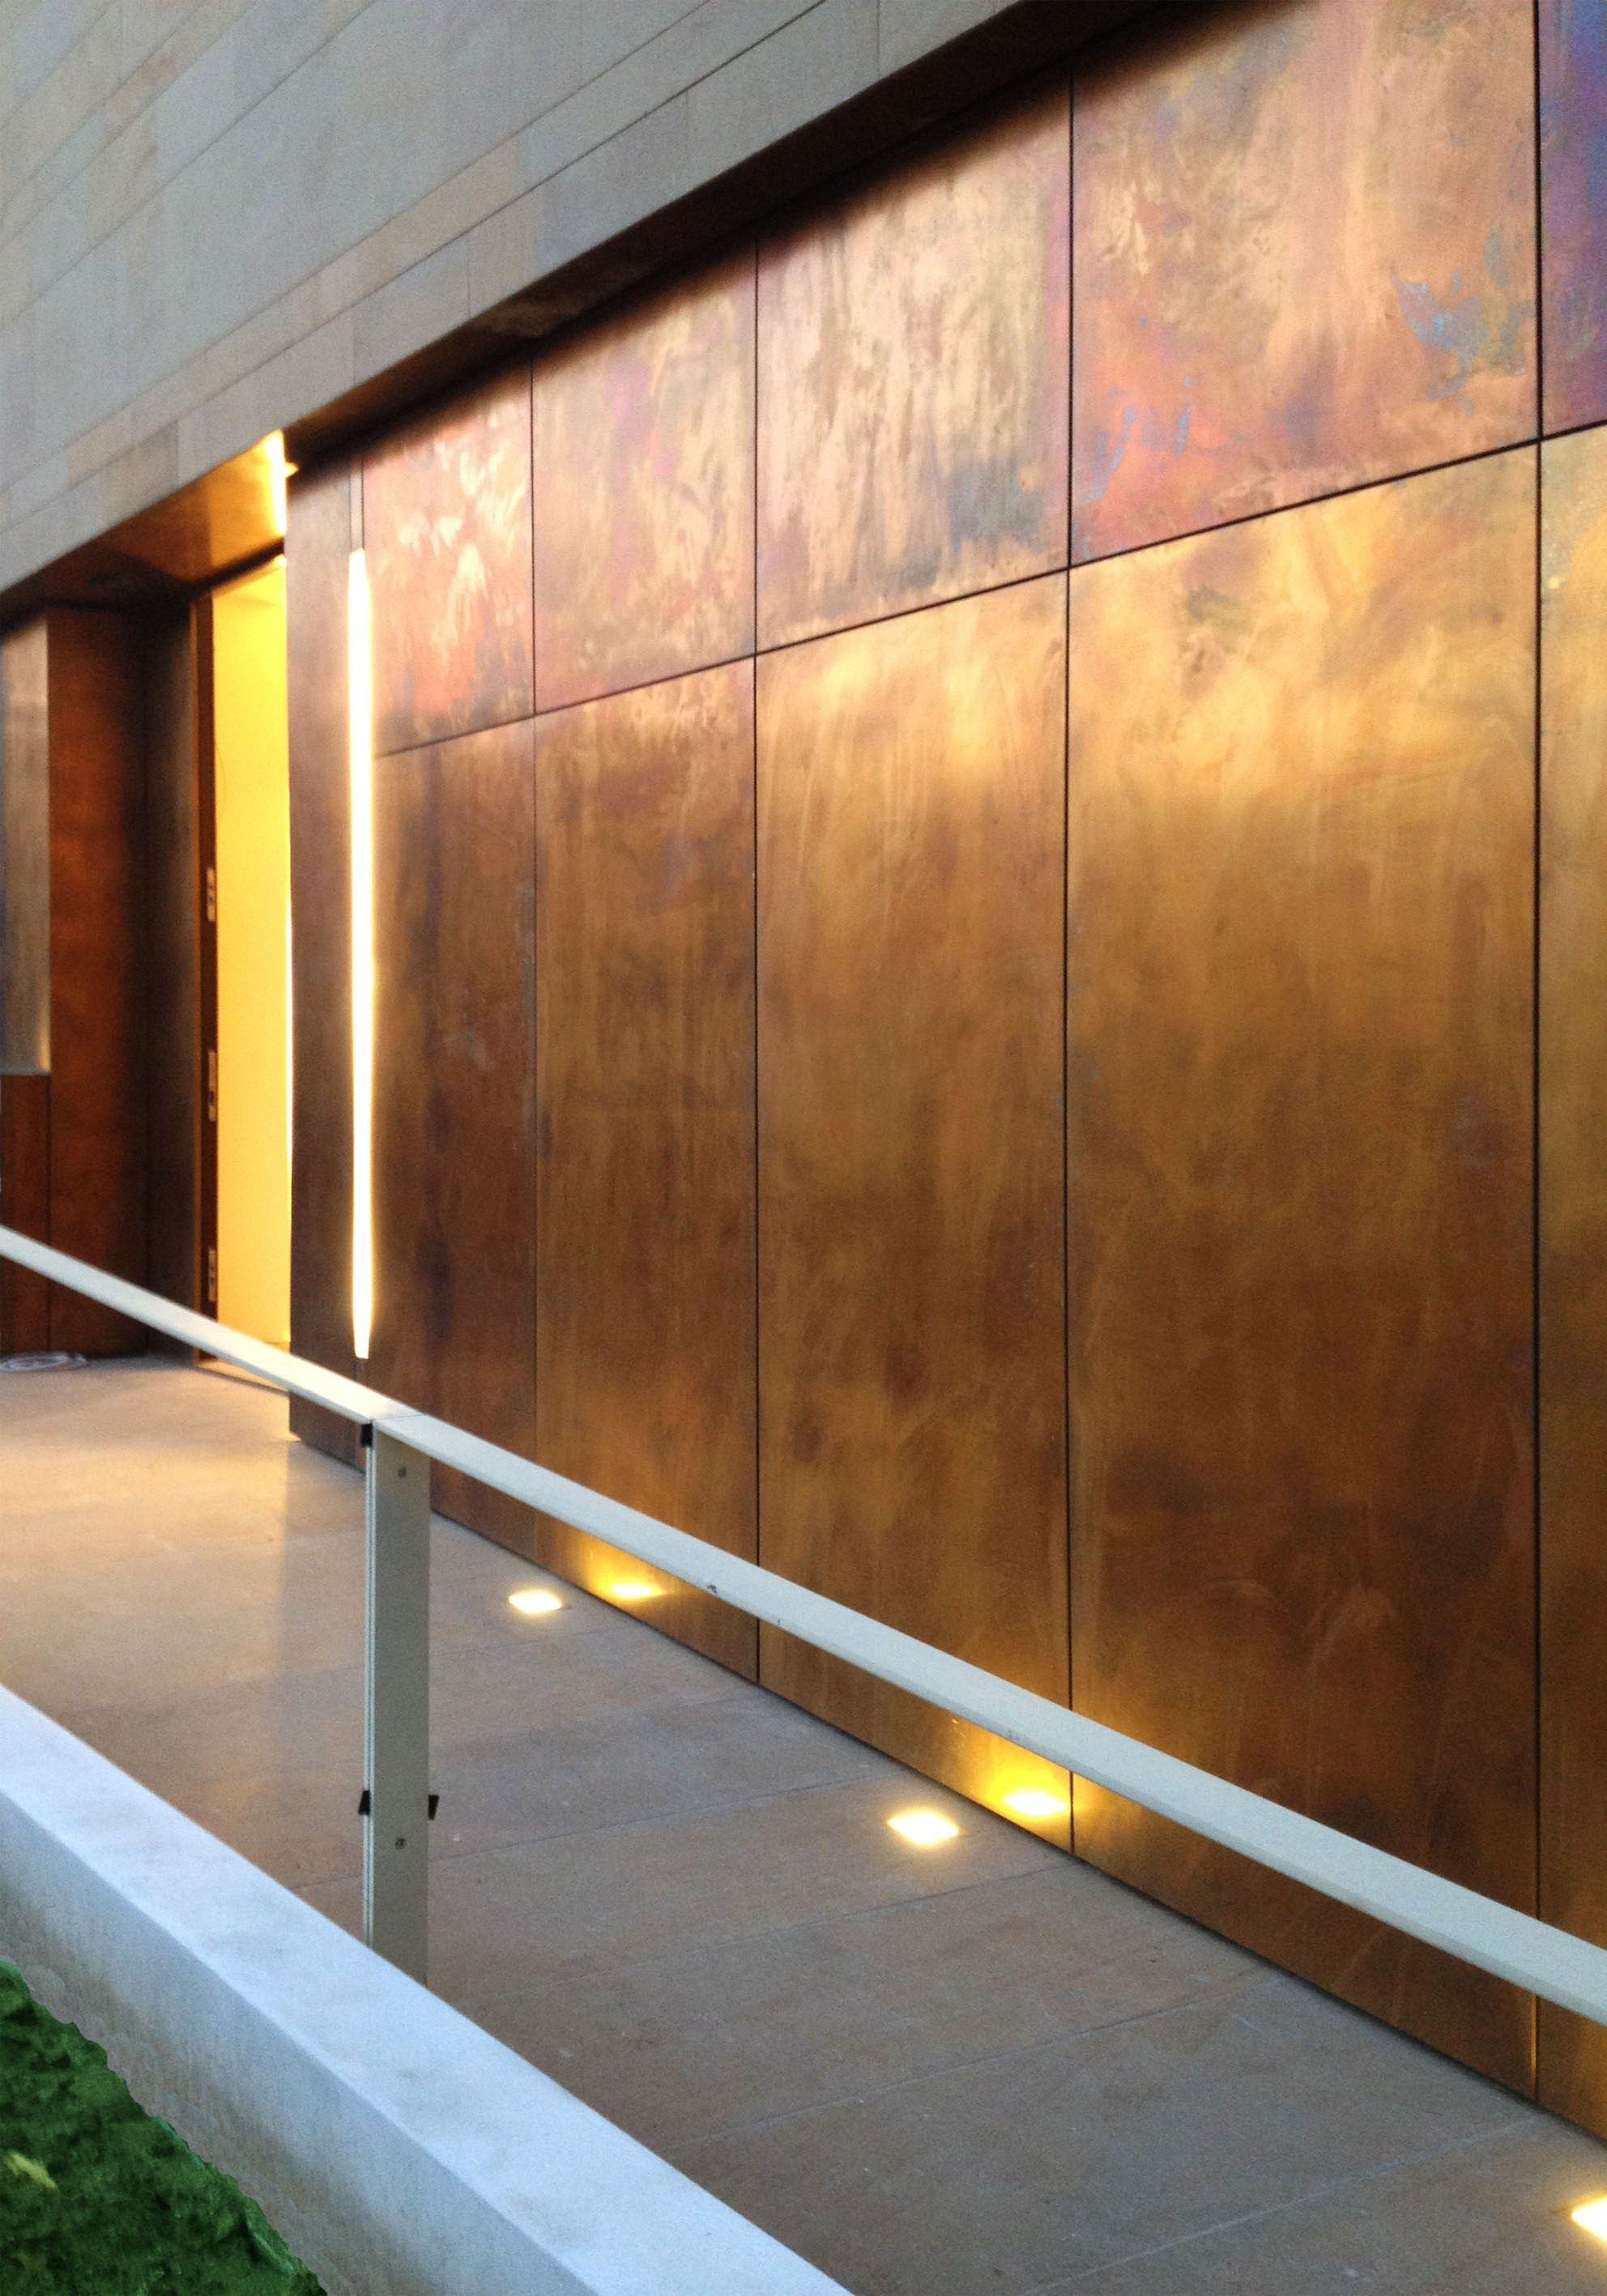 Metal Sheet And Panel For Facade Tecu Brass Brownished By Kme Italy S P A Architectural Solutions Oblicovka Sten Metallicheskie Stenki Stena Dizajn